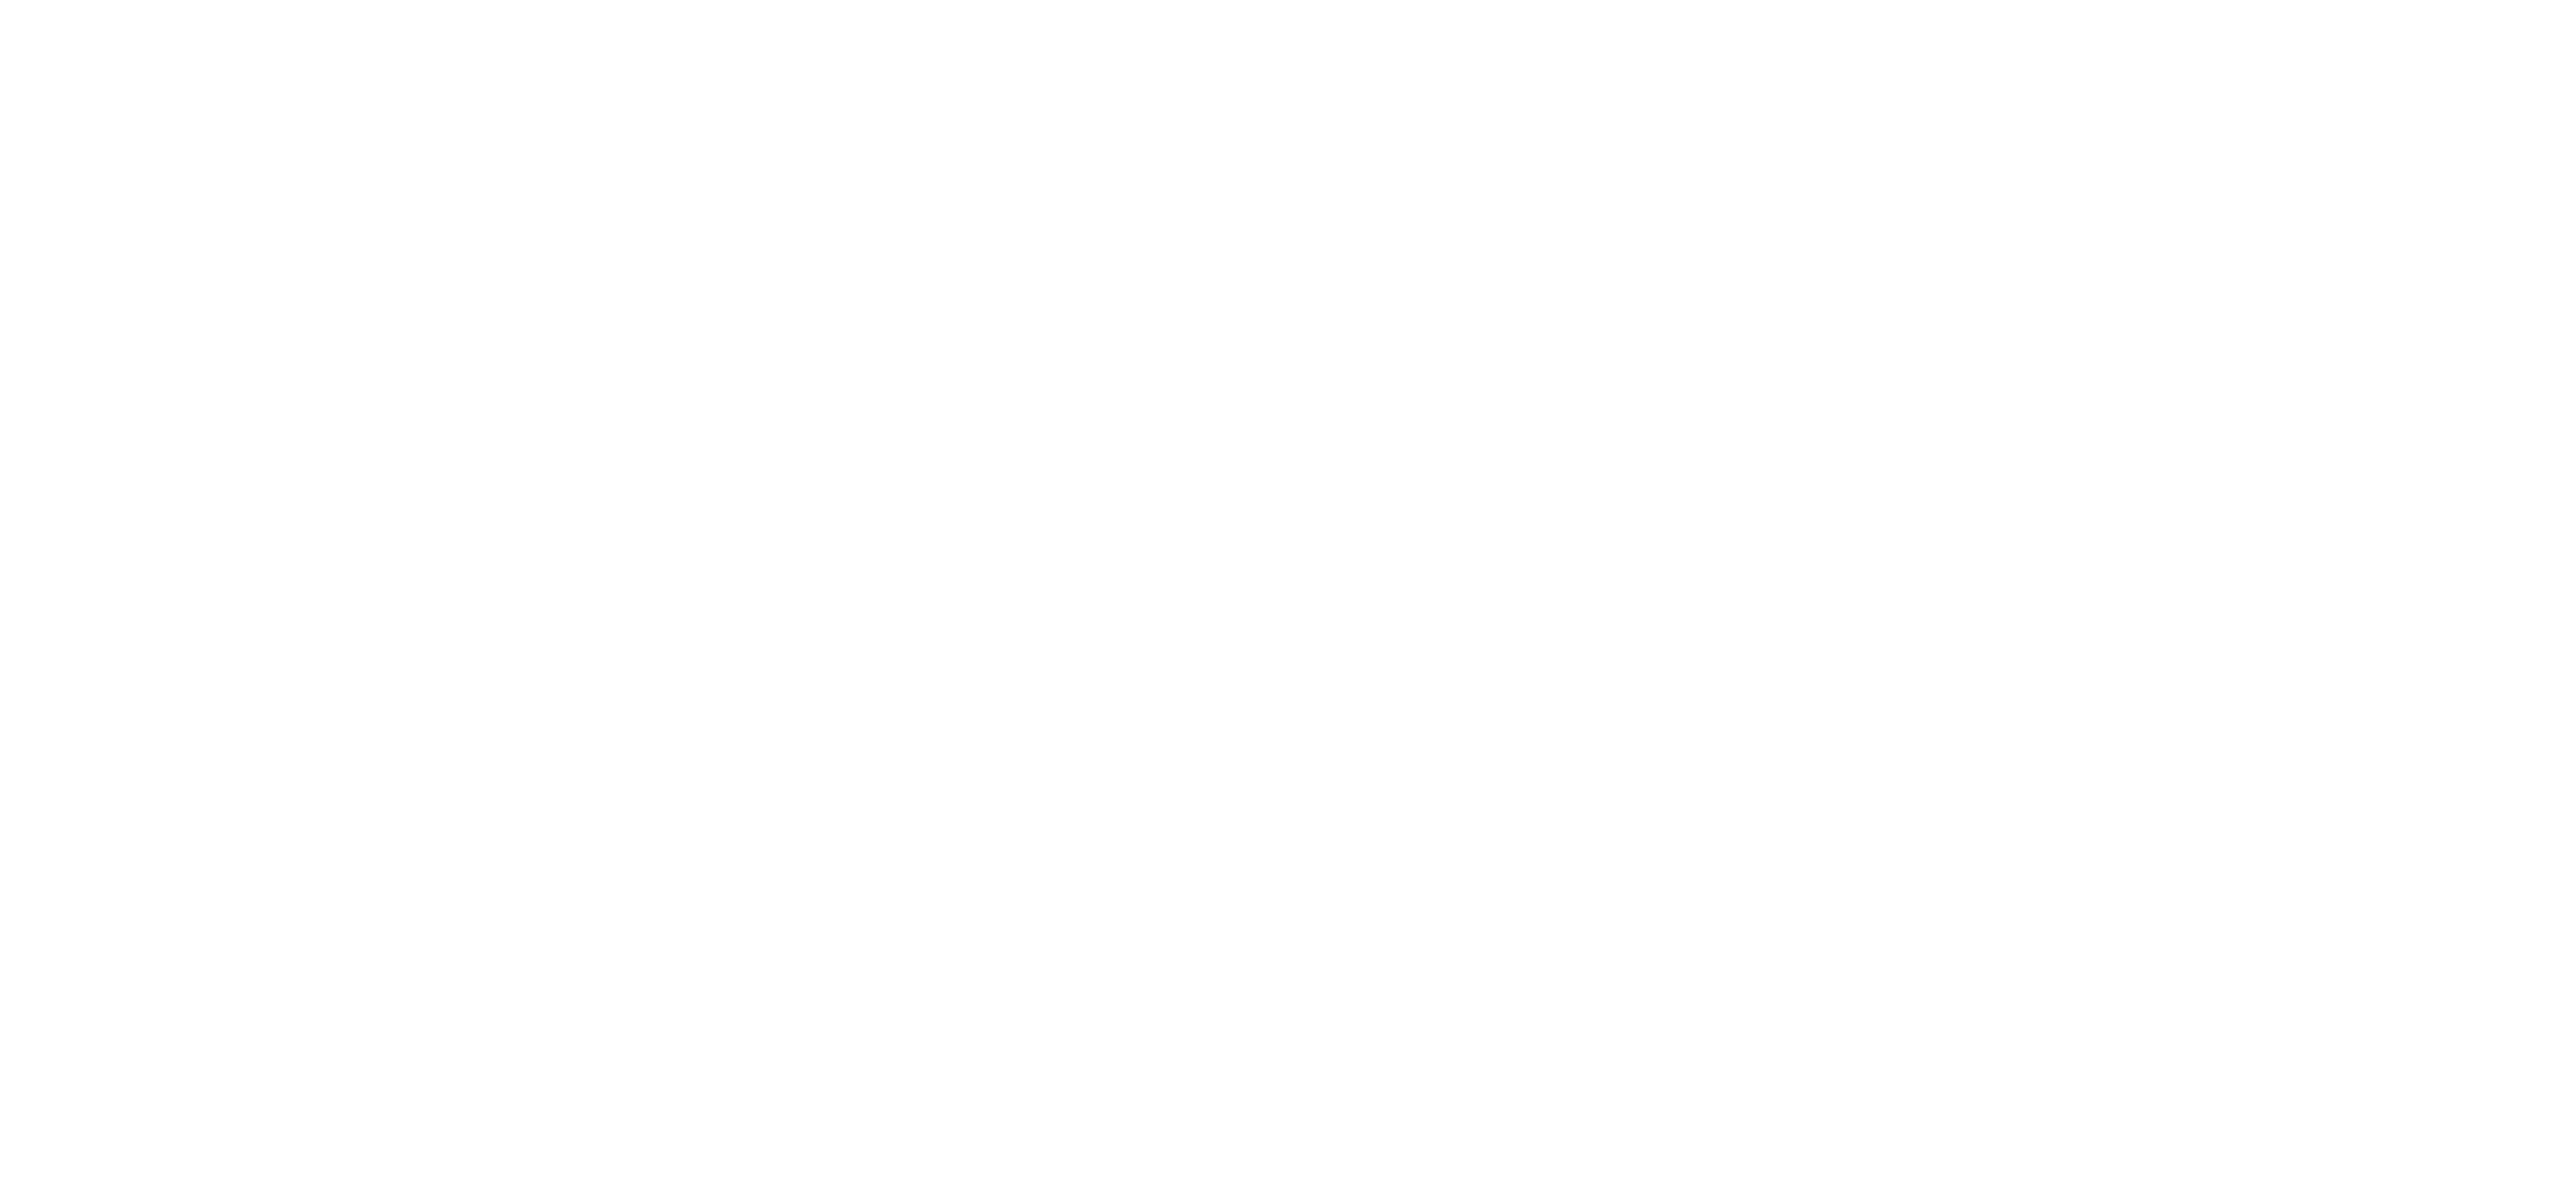 Debbie Doğrul Associates - Long & Foster Real Estate